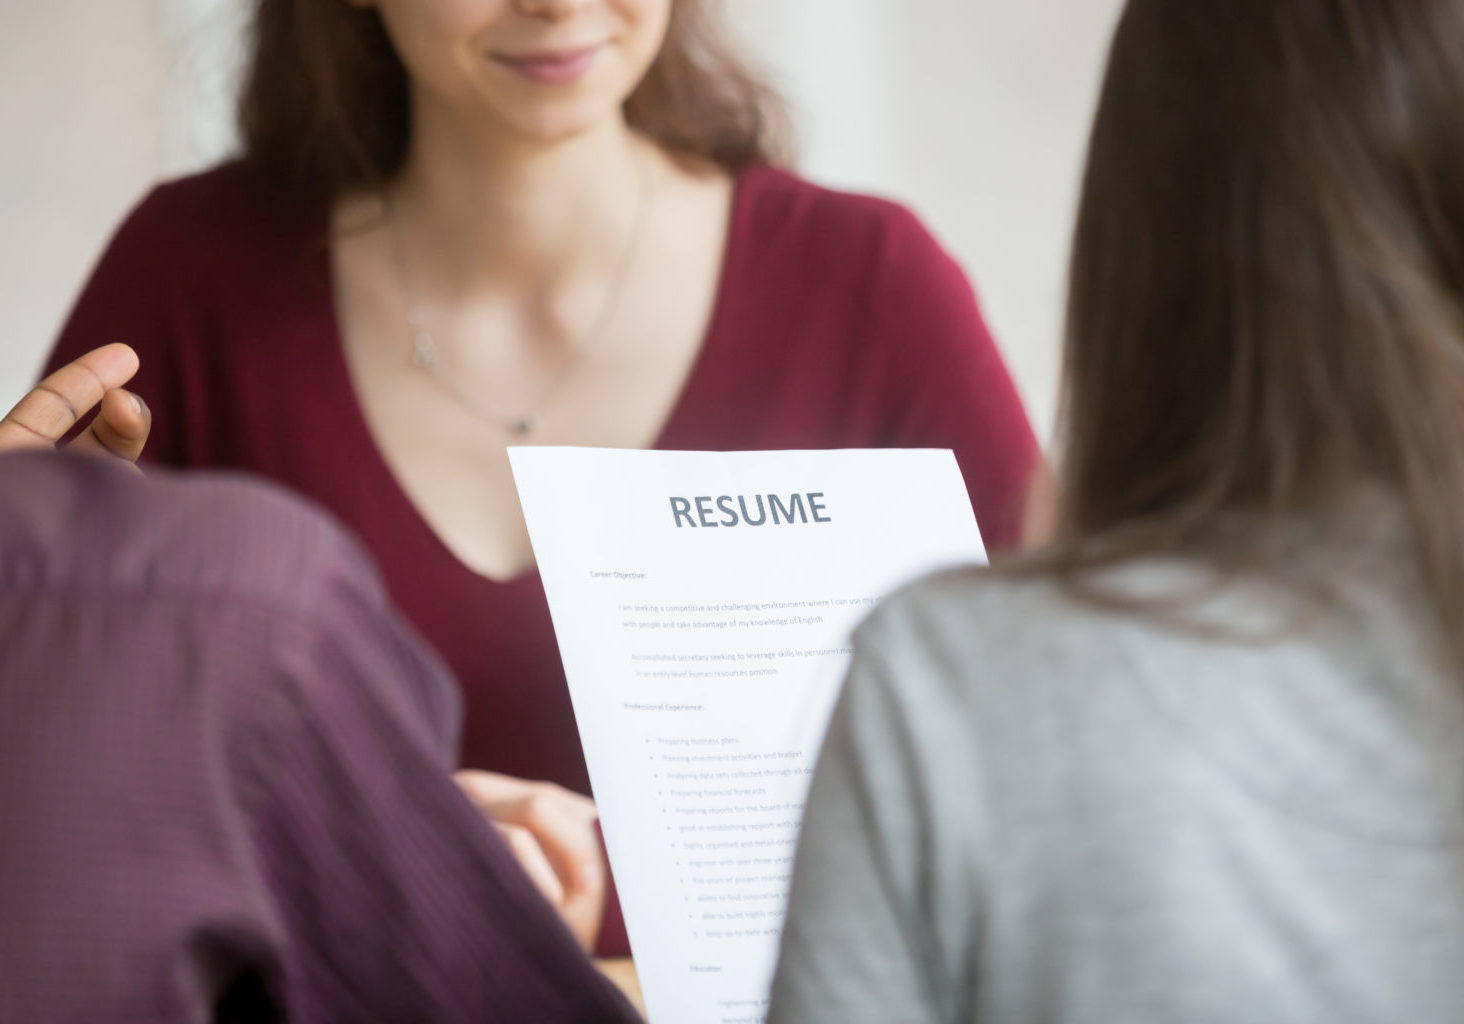 Multiracial,Hr,Holding,Resume,At,Job,Interview,With,Woman,Candidate,